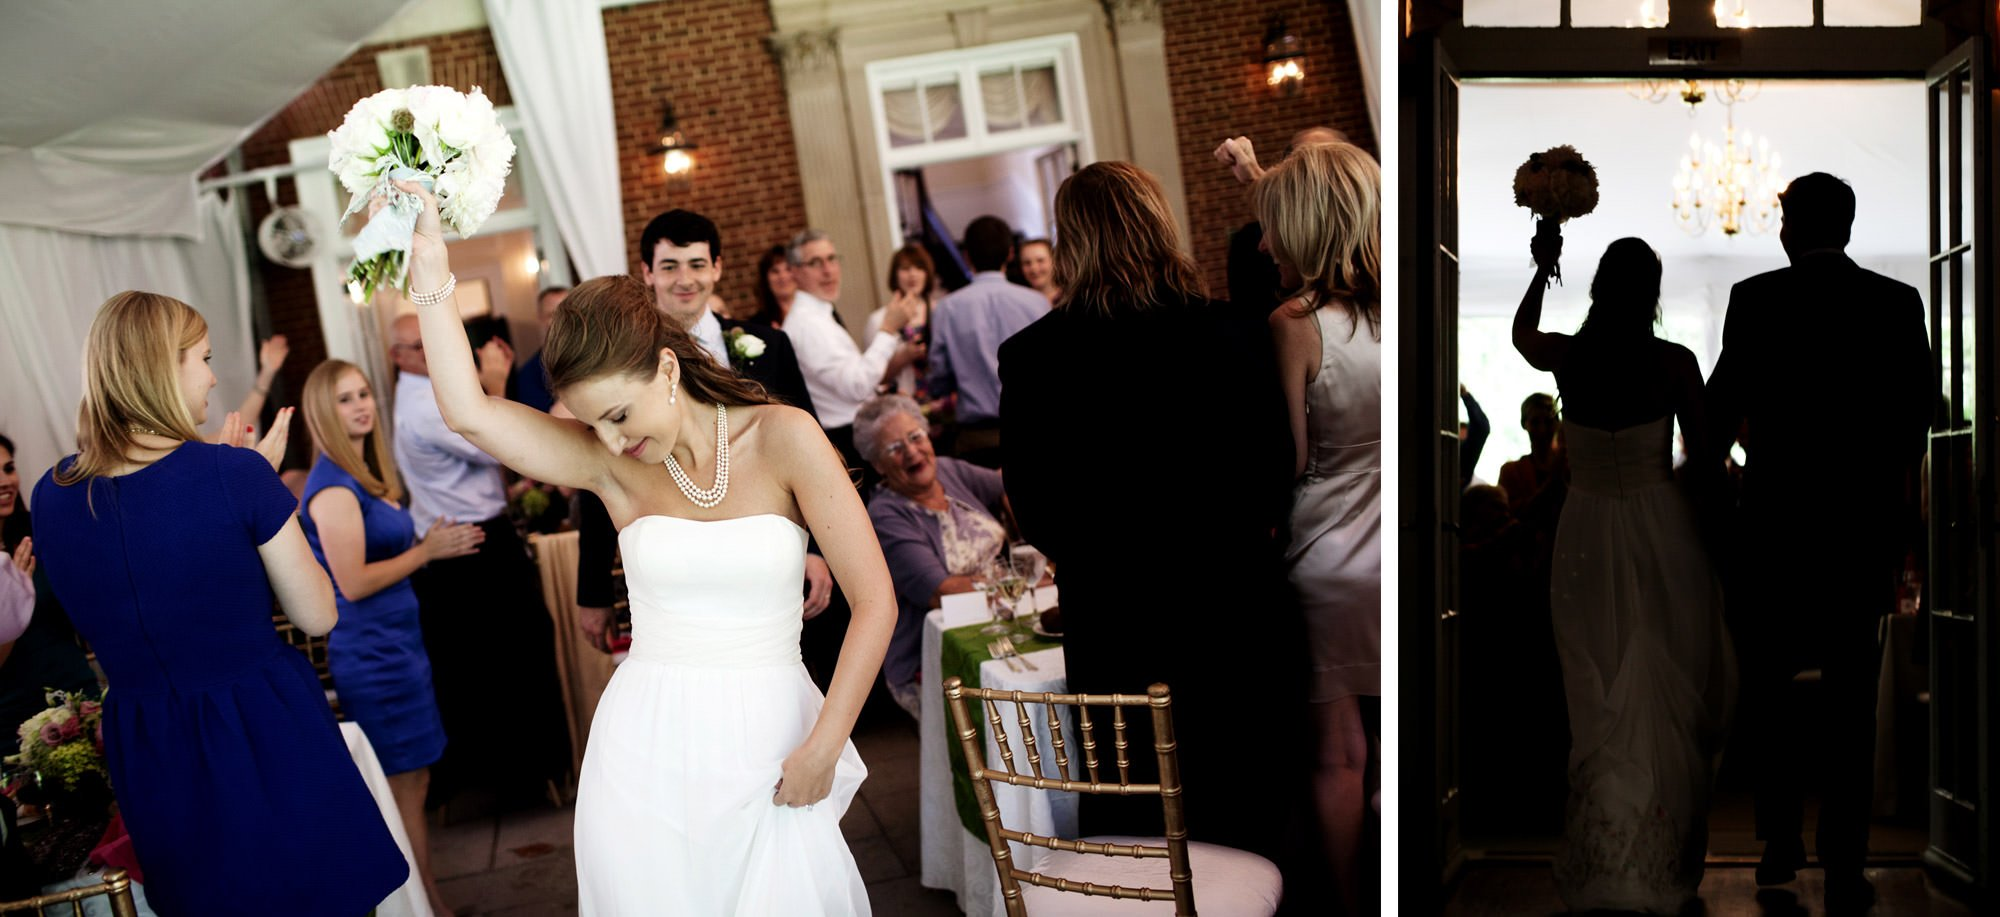 The bride and groom are introduced to the wedding reception at Woodend Sanctuary & Mansion.